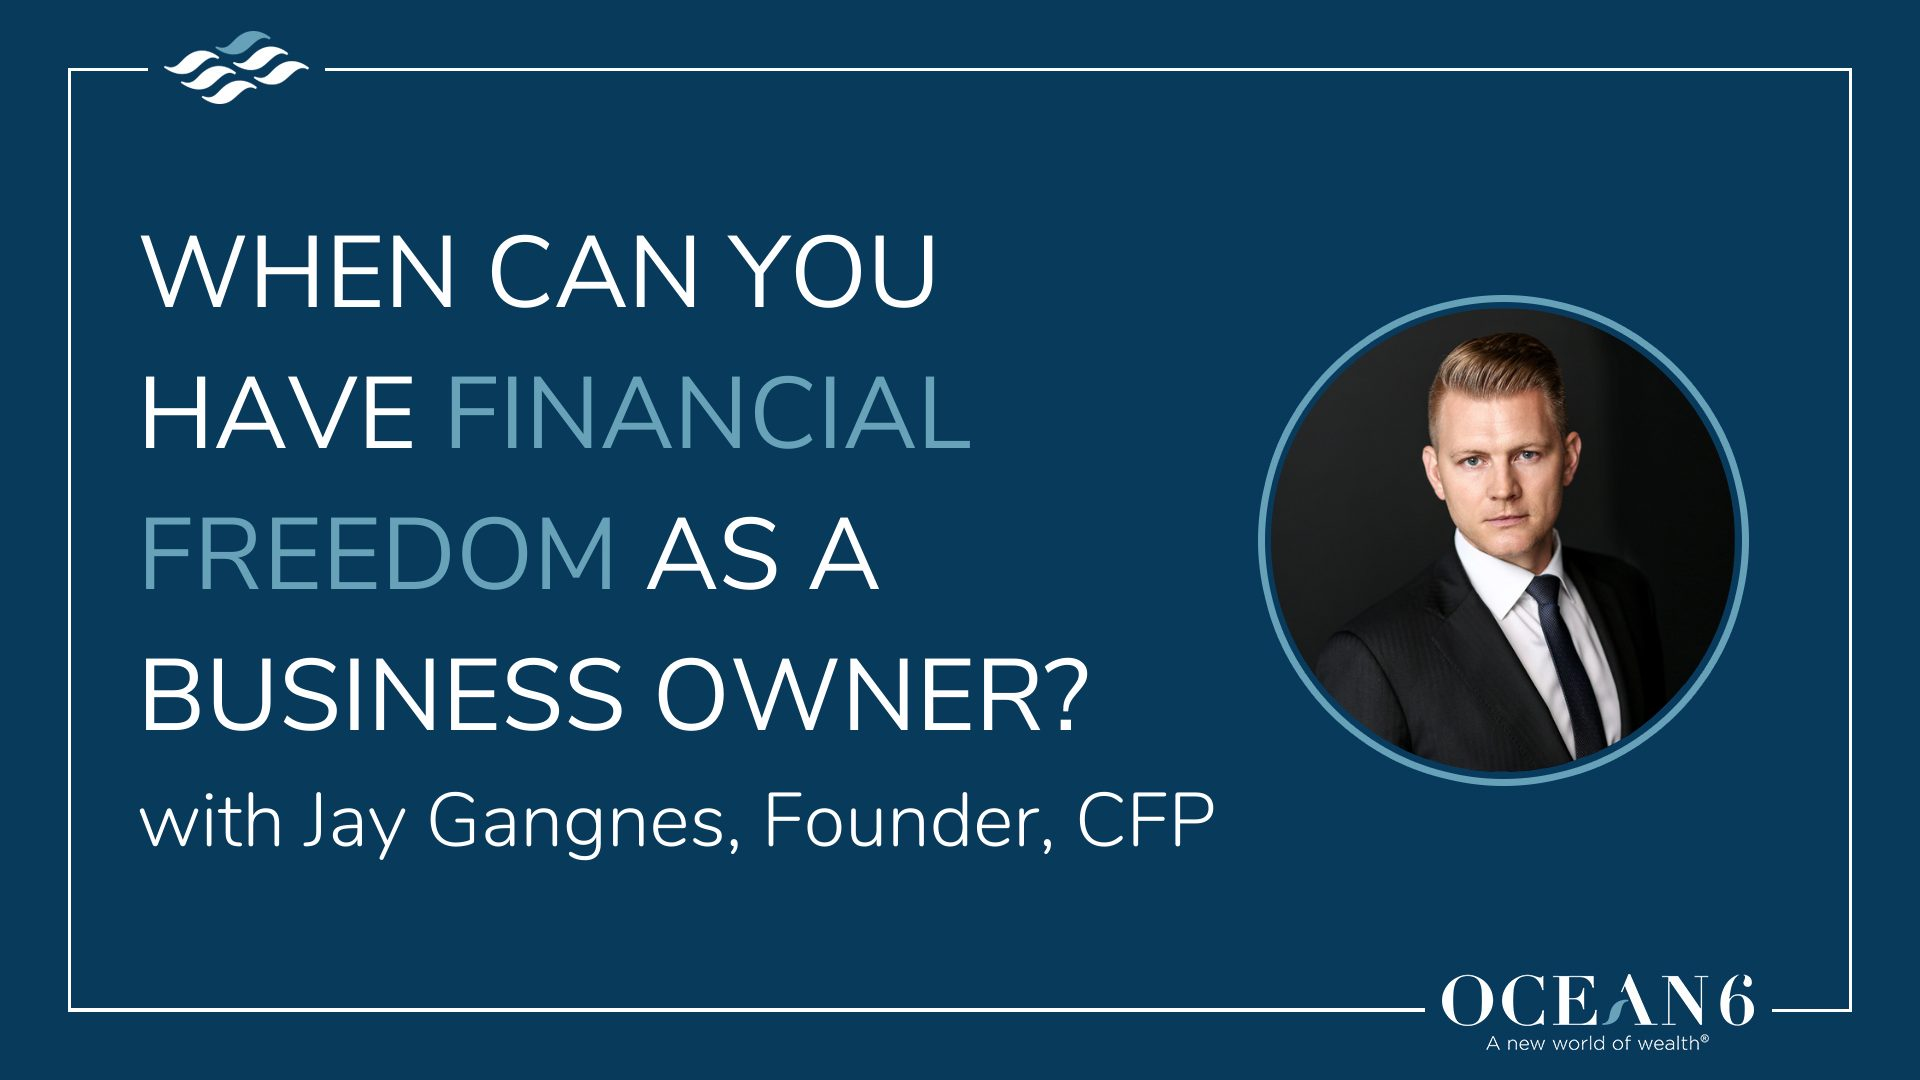 When Can You Have Financial Freedom as a Business Owner?